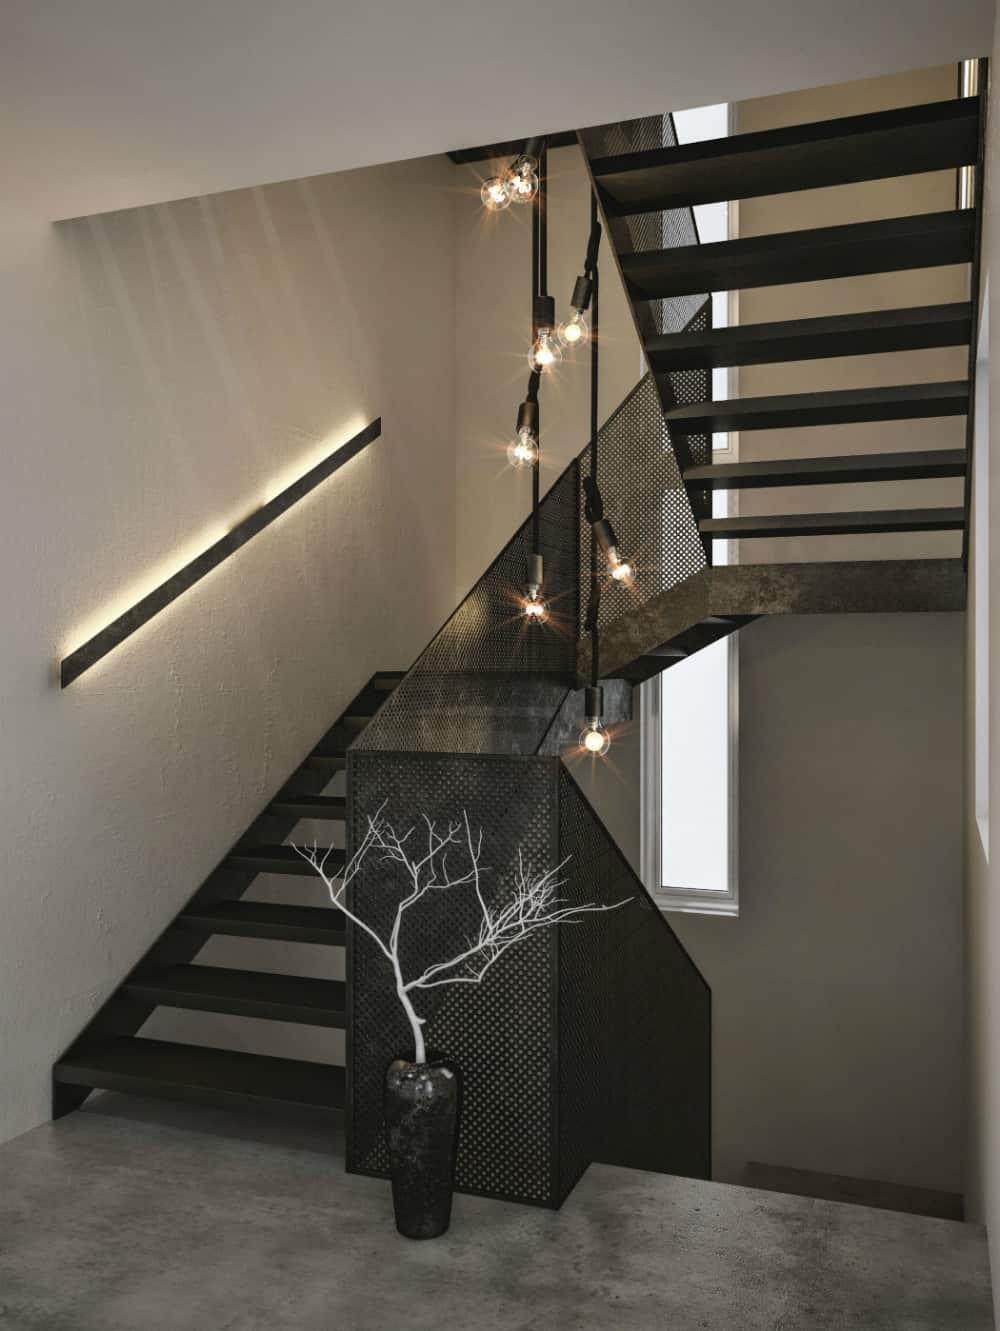 Perforated staircase connects storeys